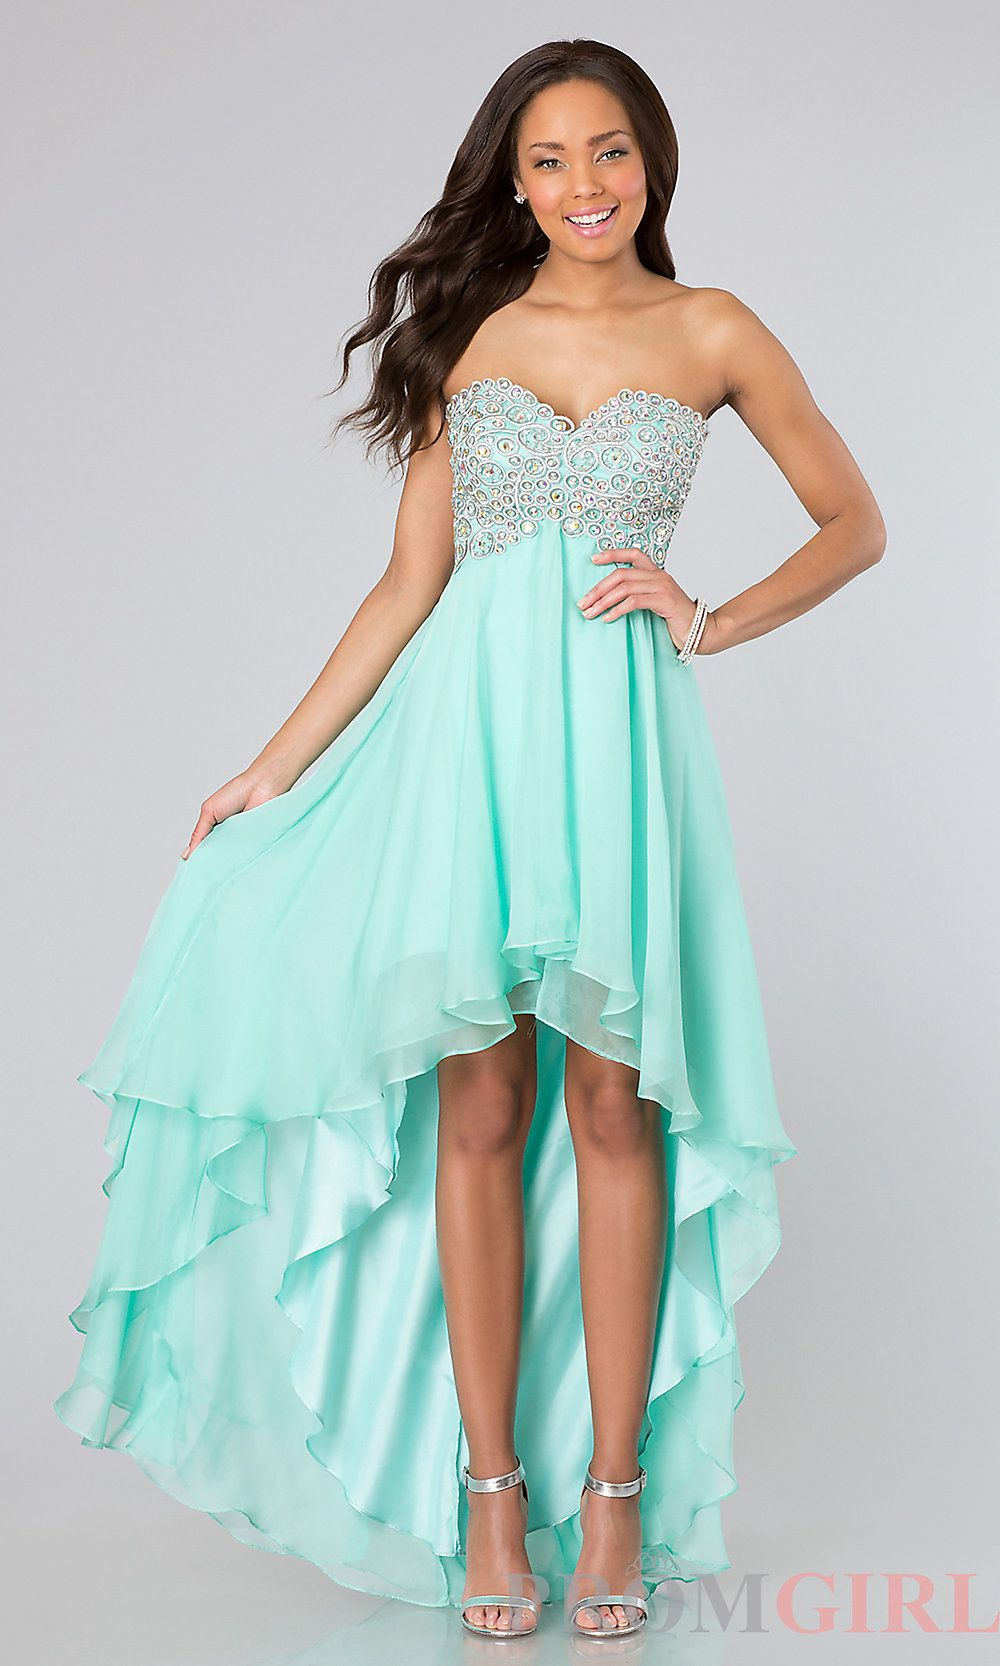 Aquamarine high low dress with beaded empire. | dressy | Pinterest ...